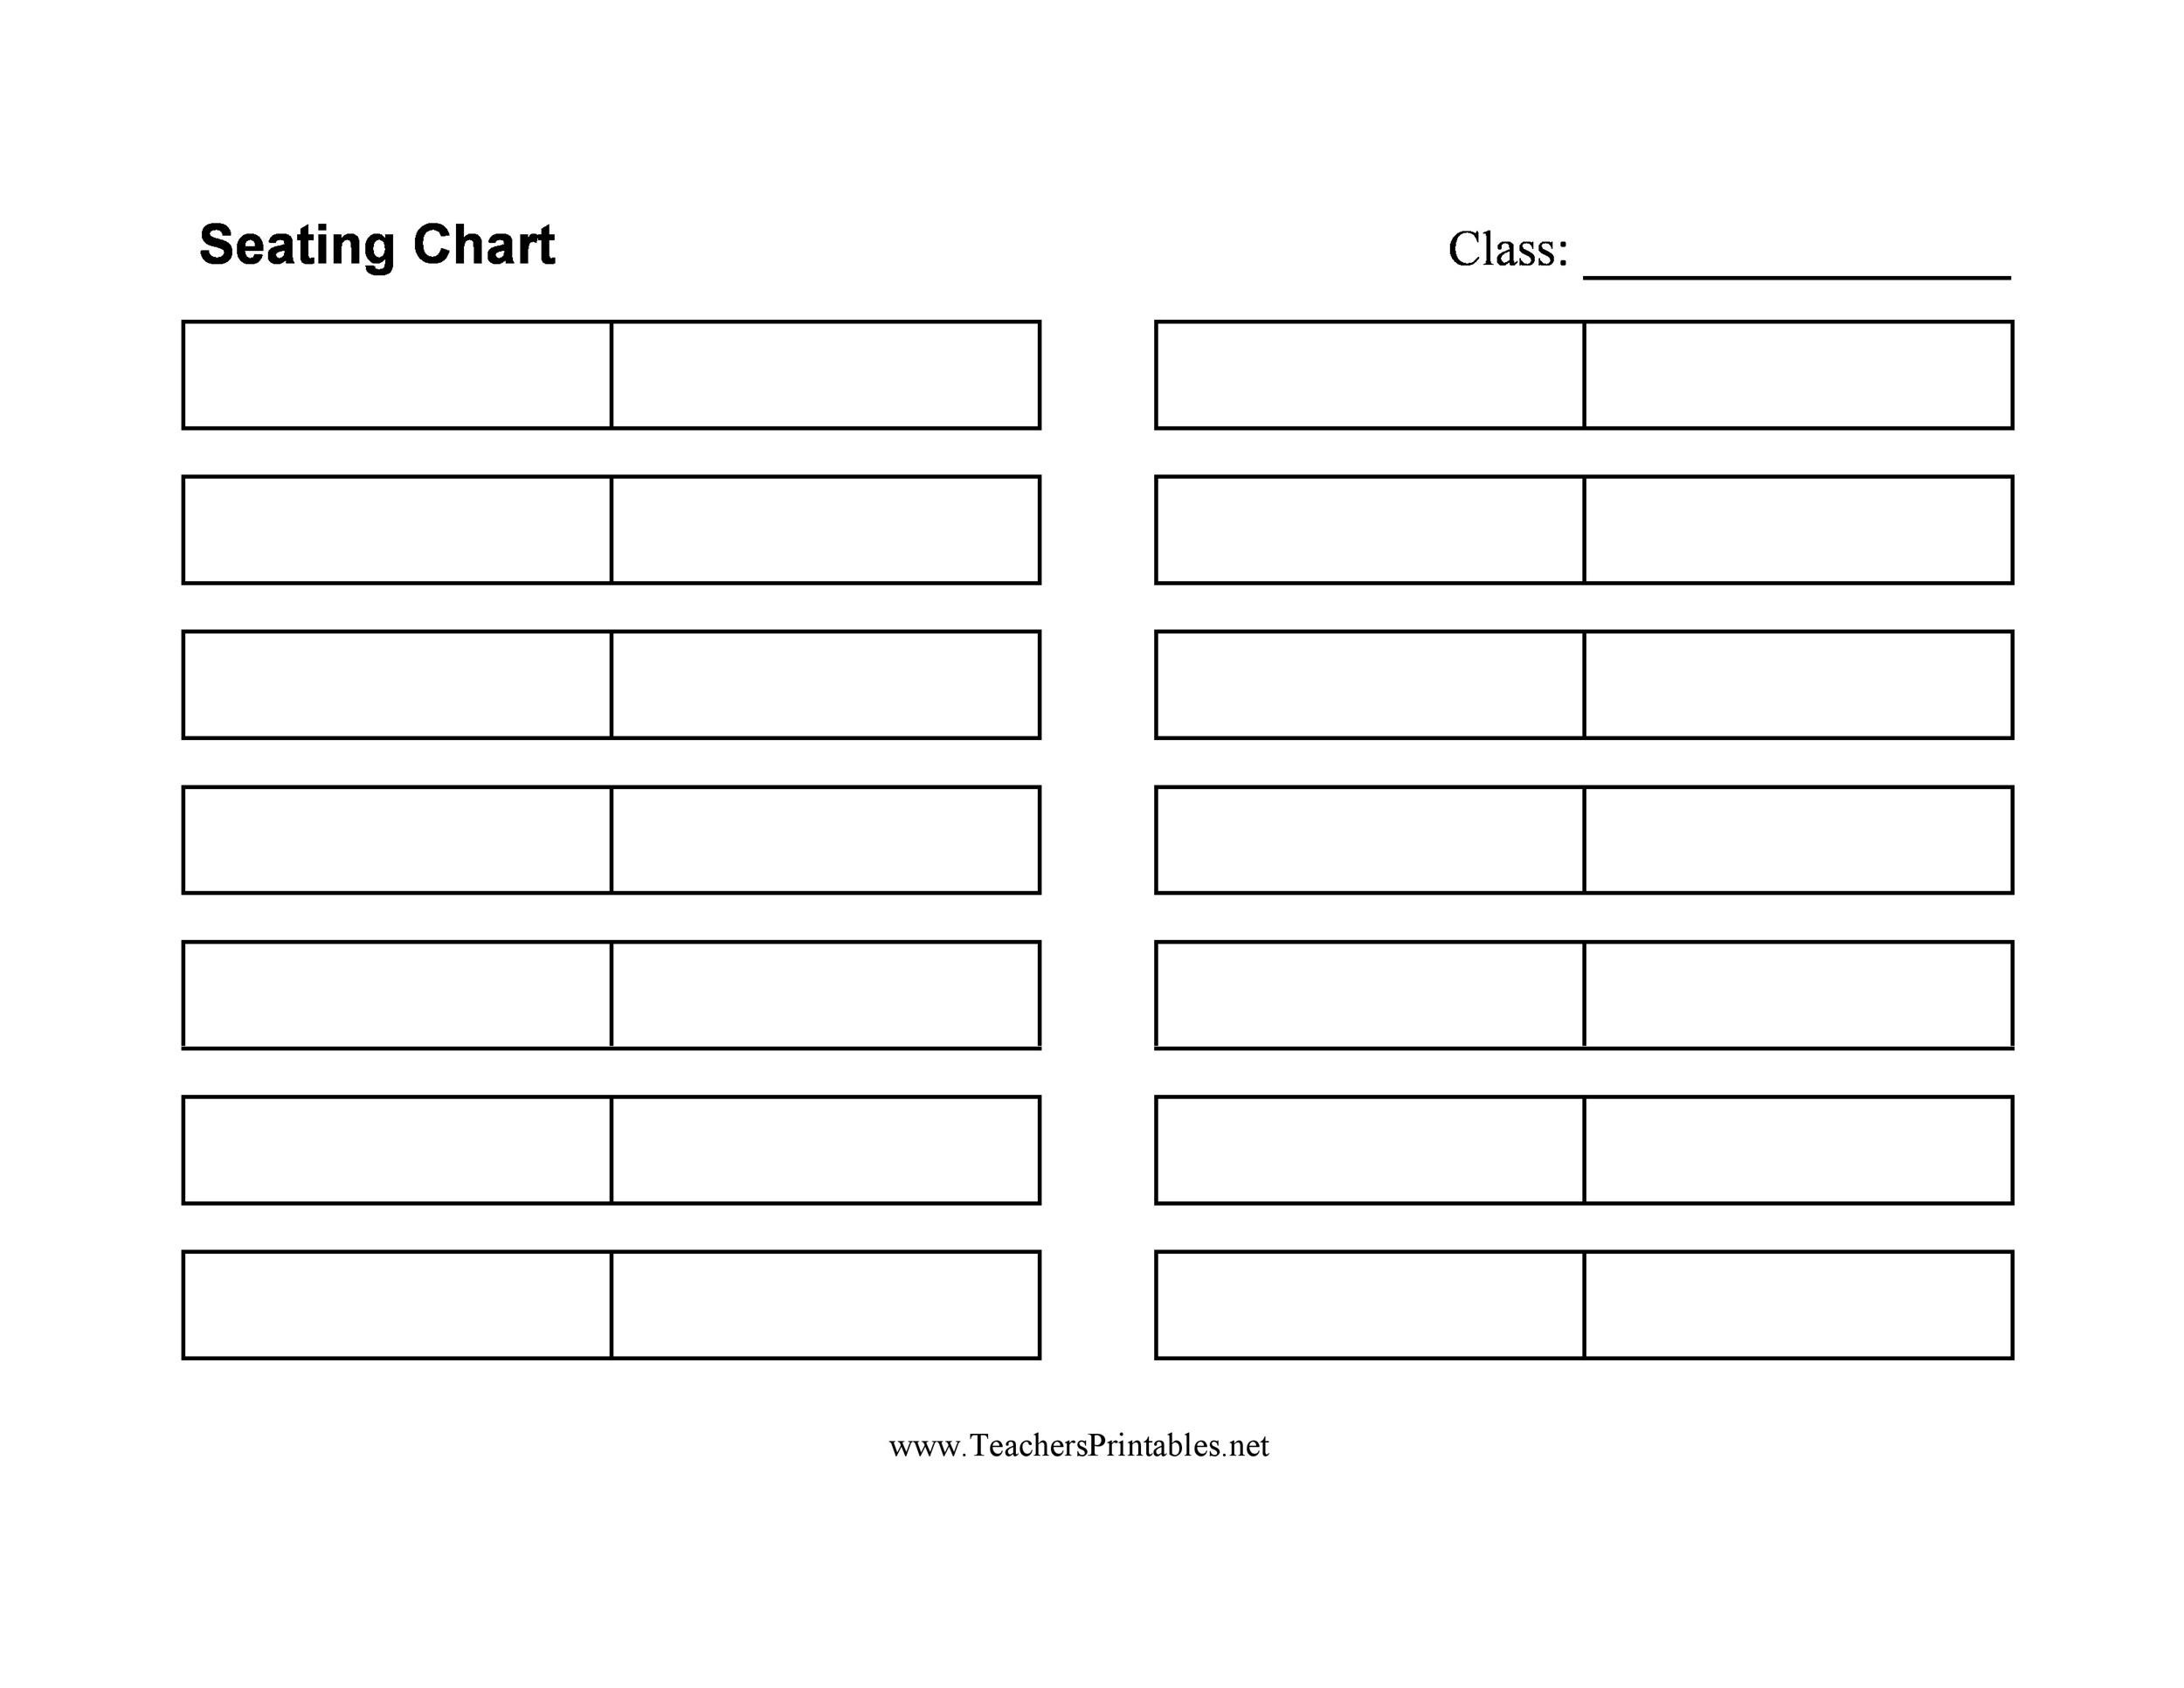 Remarkable image intended for printable seating chart template